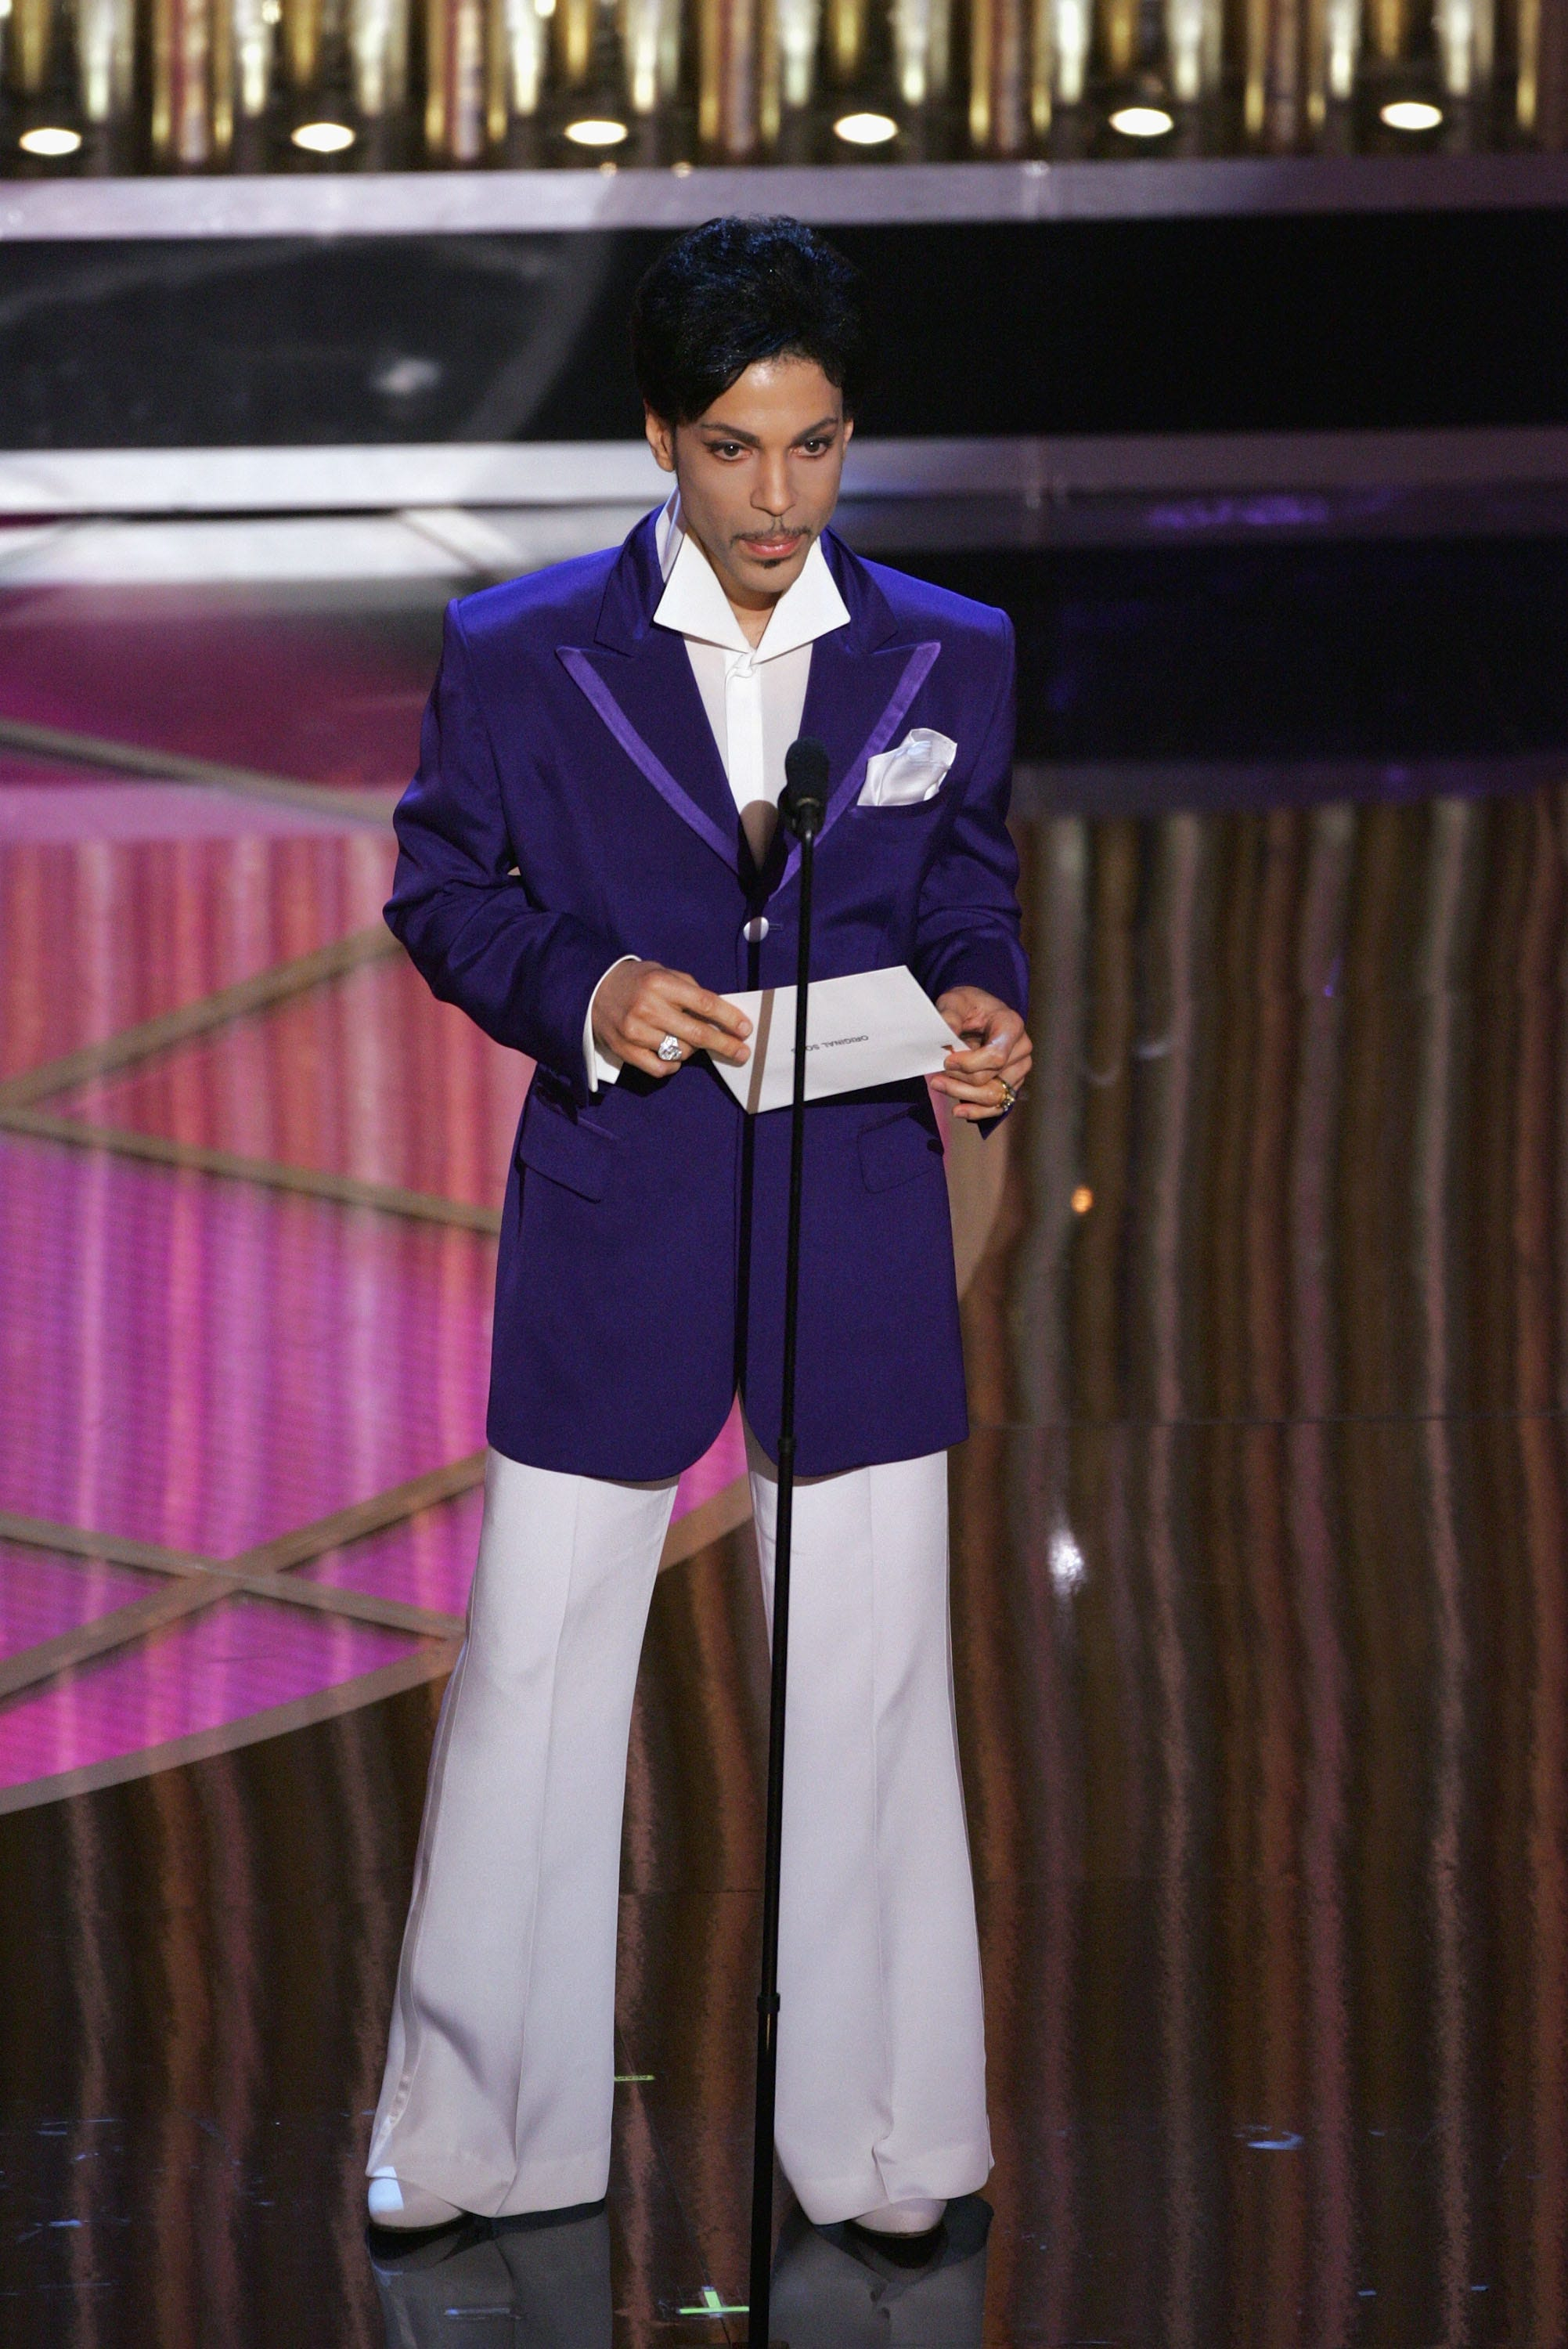 Prince's piano inspires new shade of purple